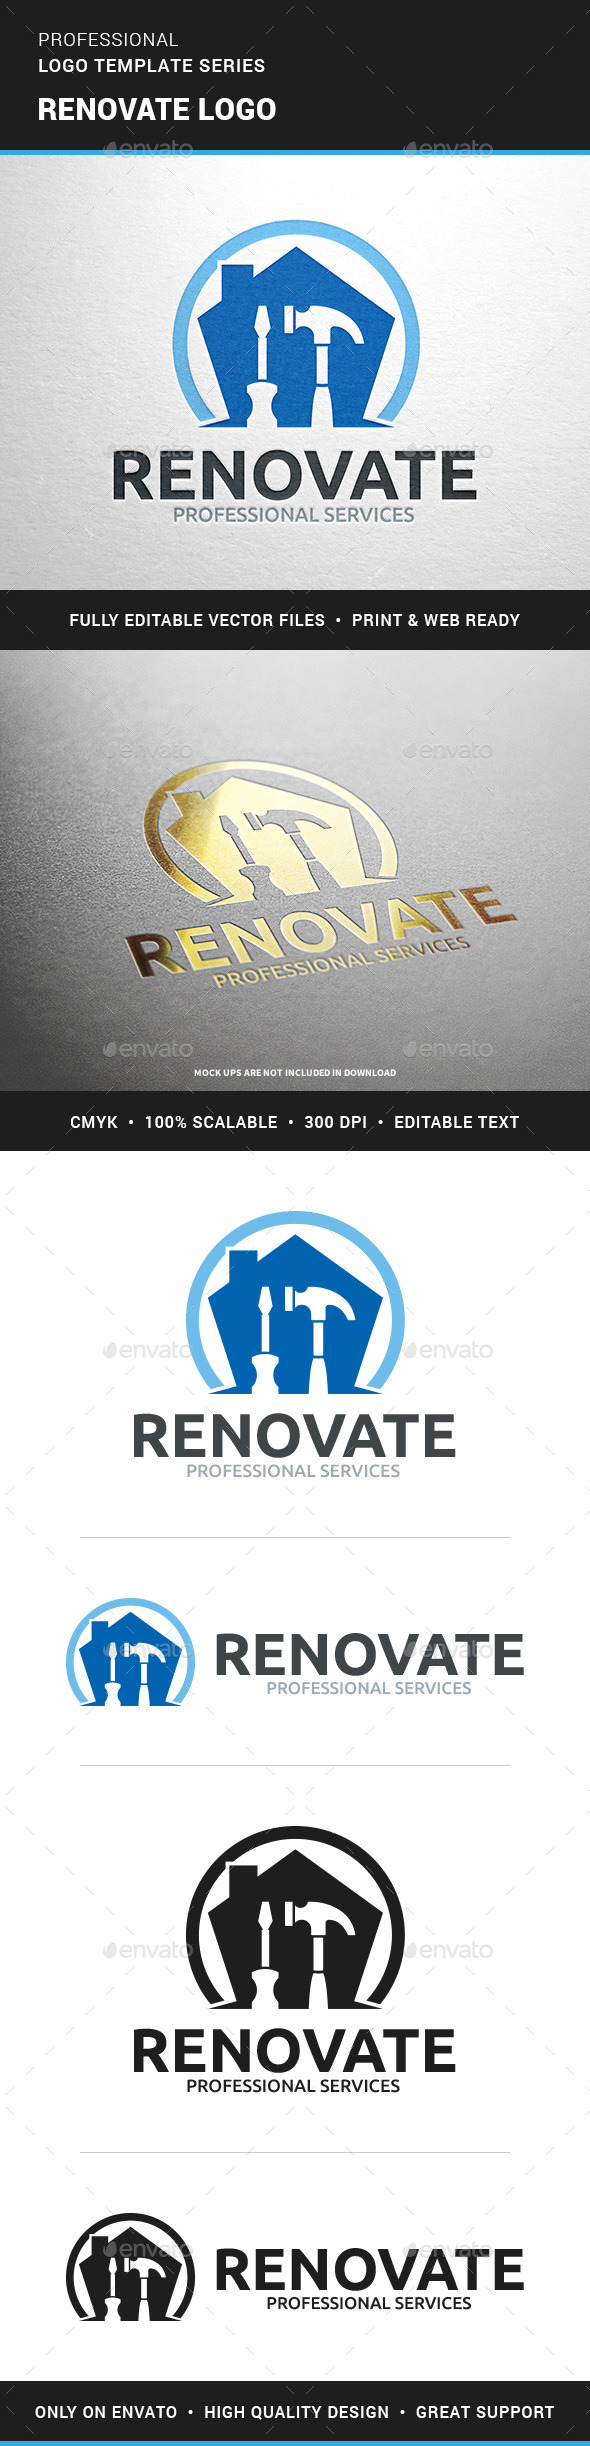 Renovate Logo Template - Objects Logo Templates